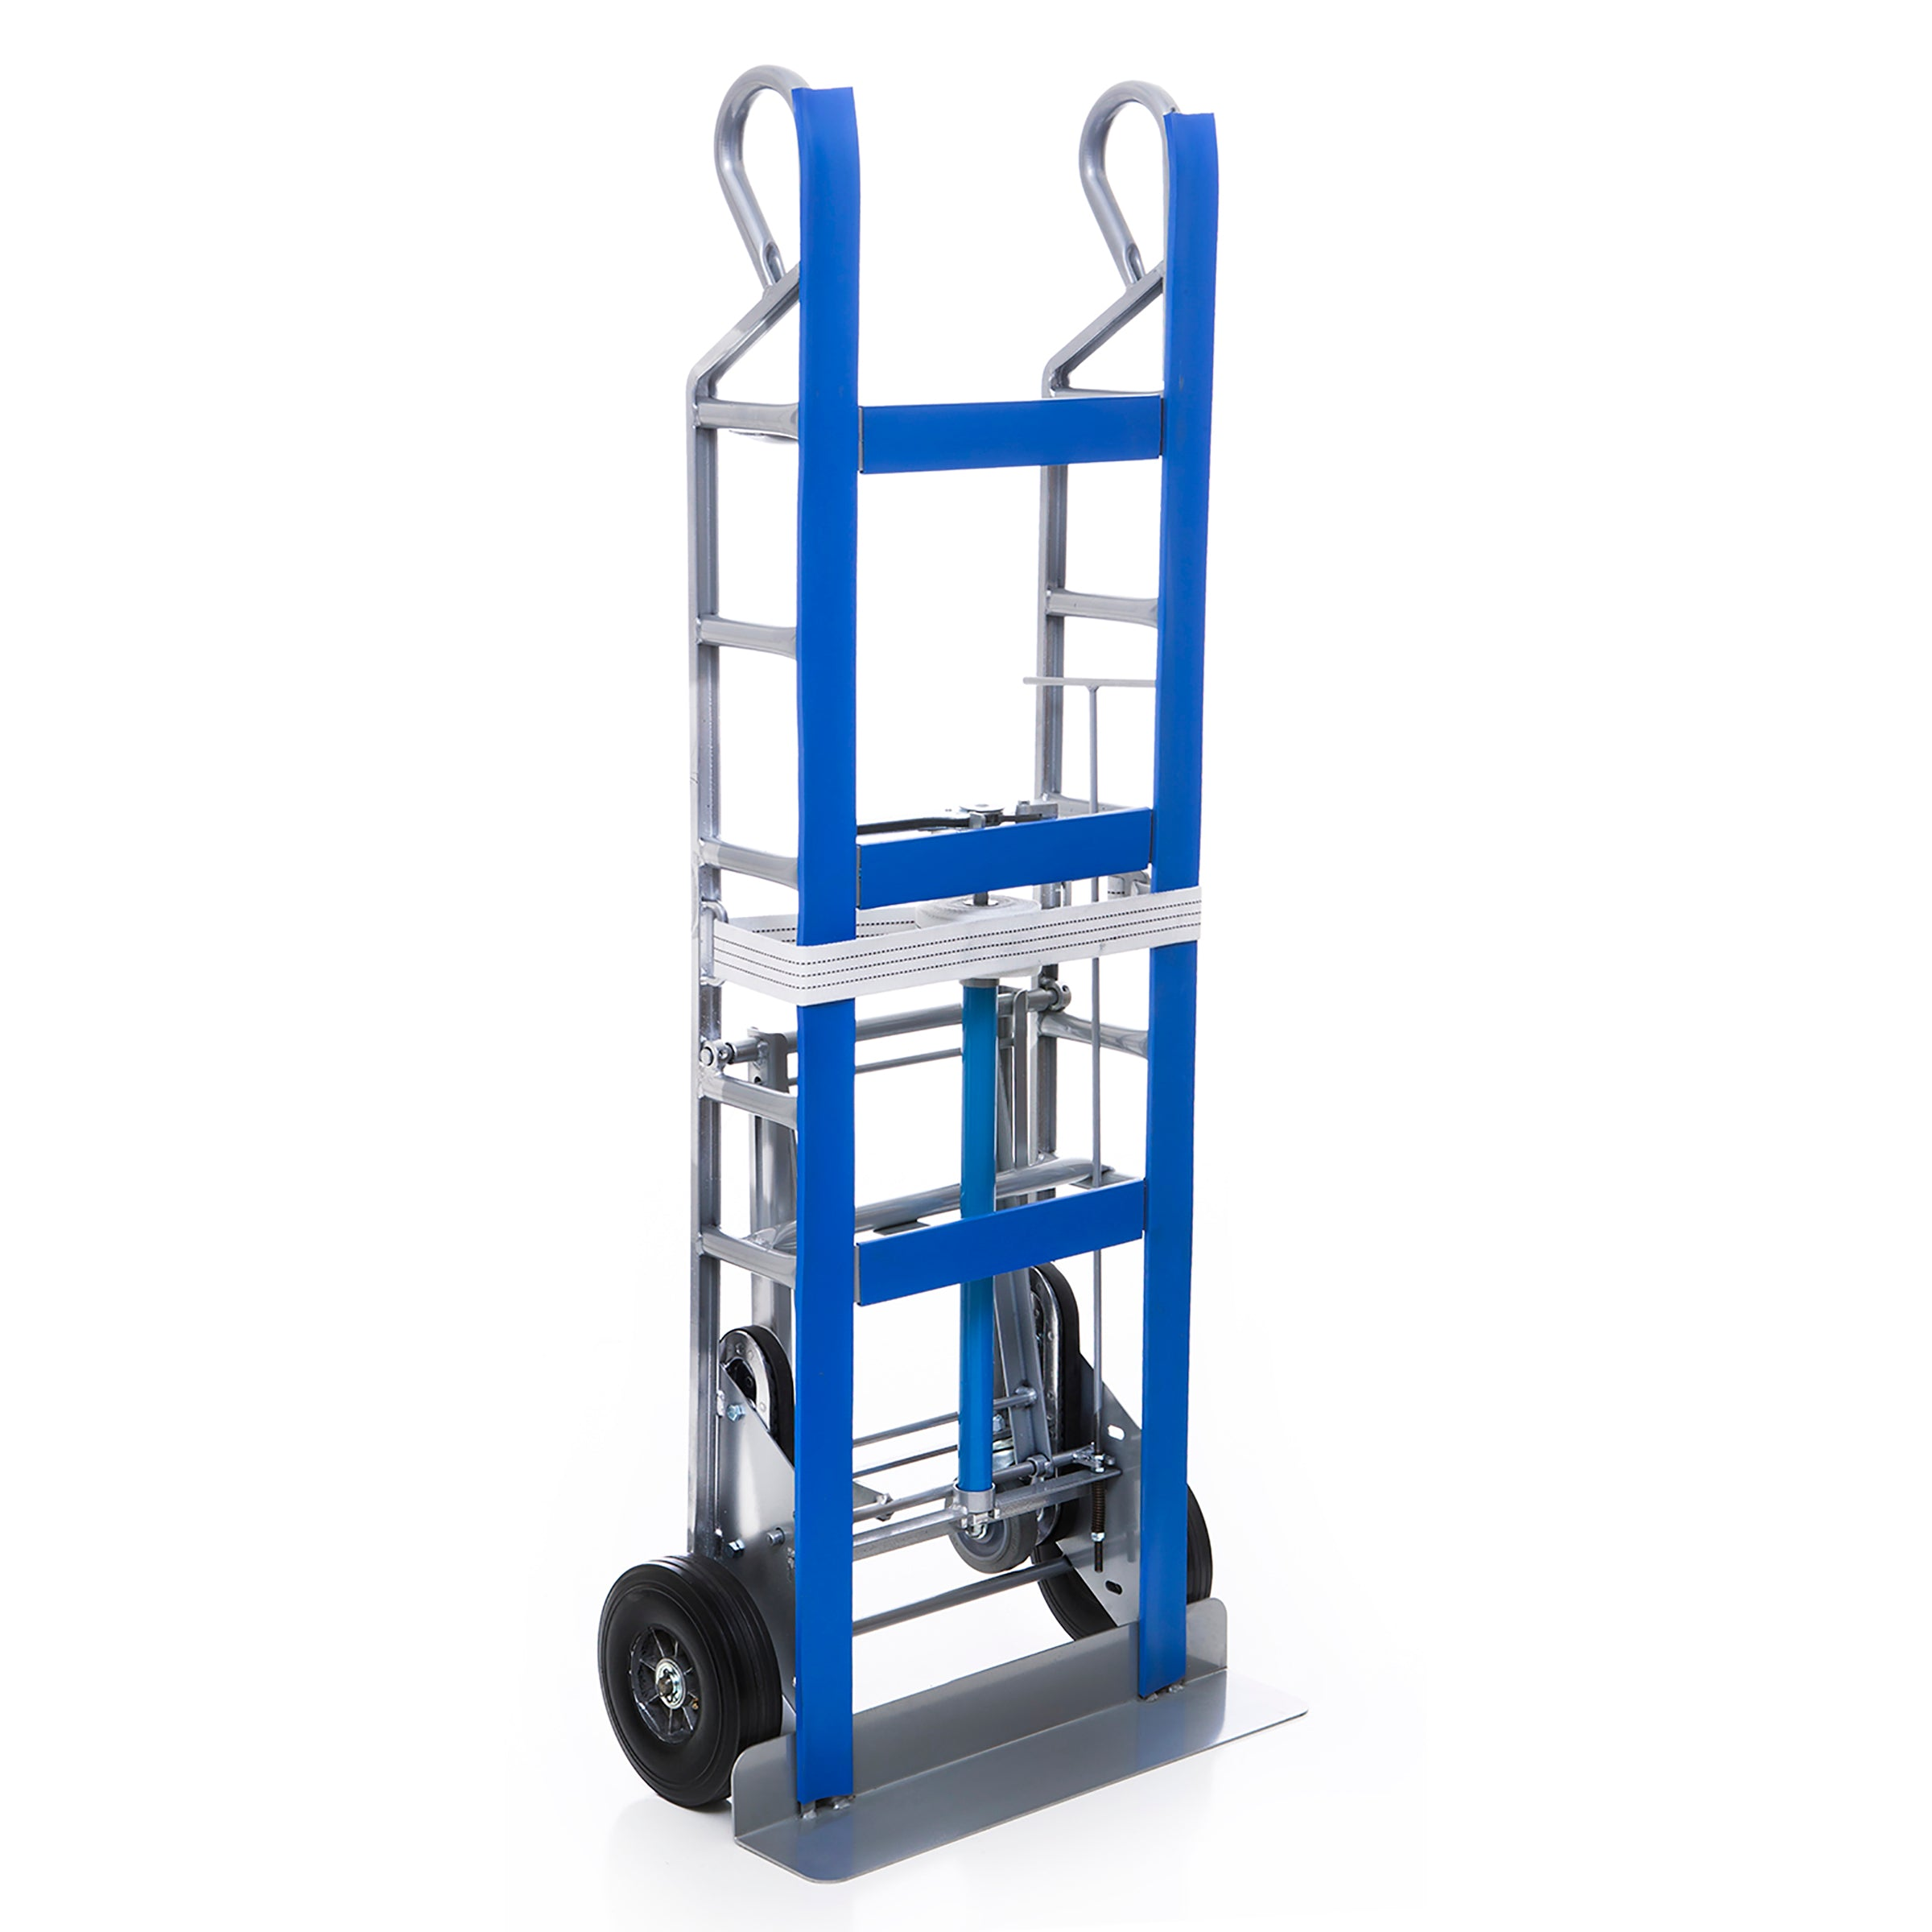 4 Wheel Appliance Hand Truck - Swing Out